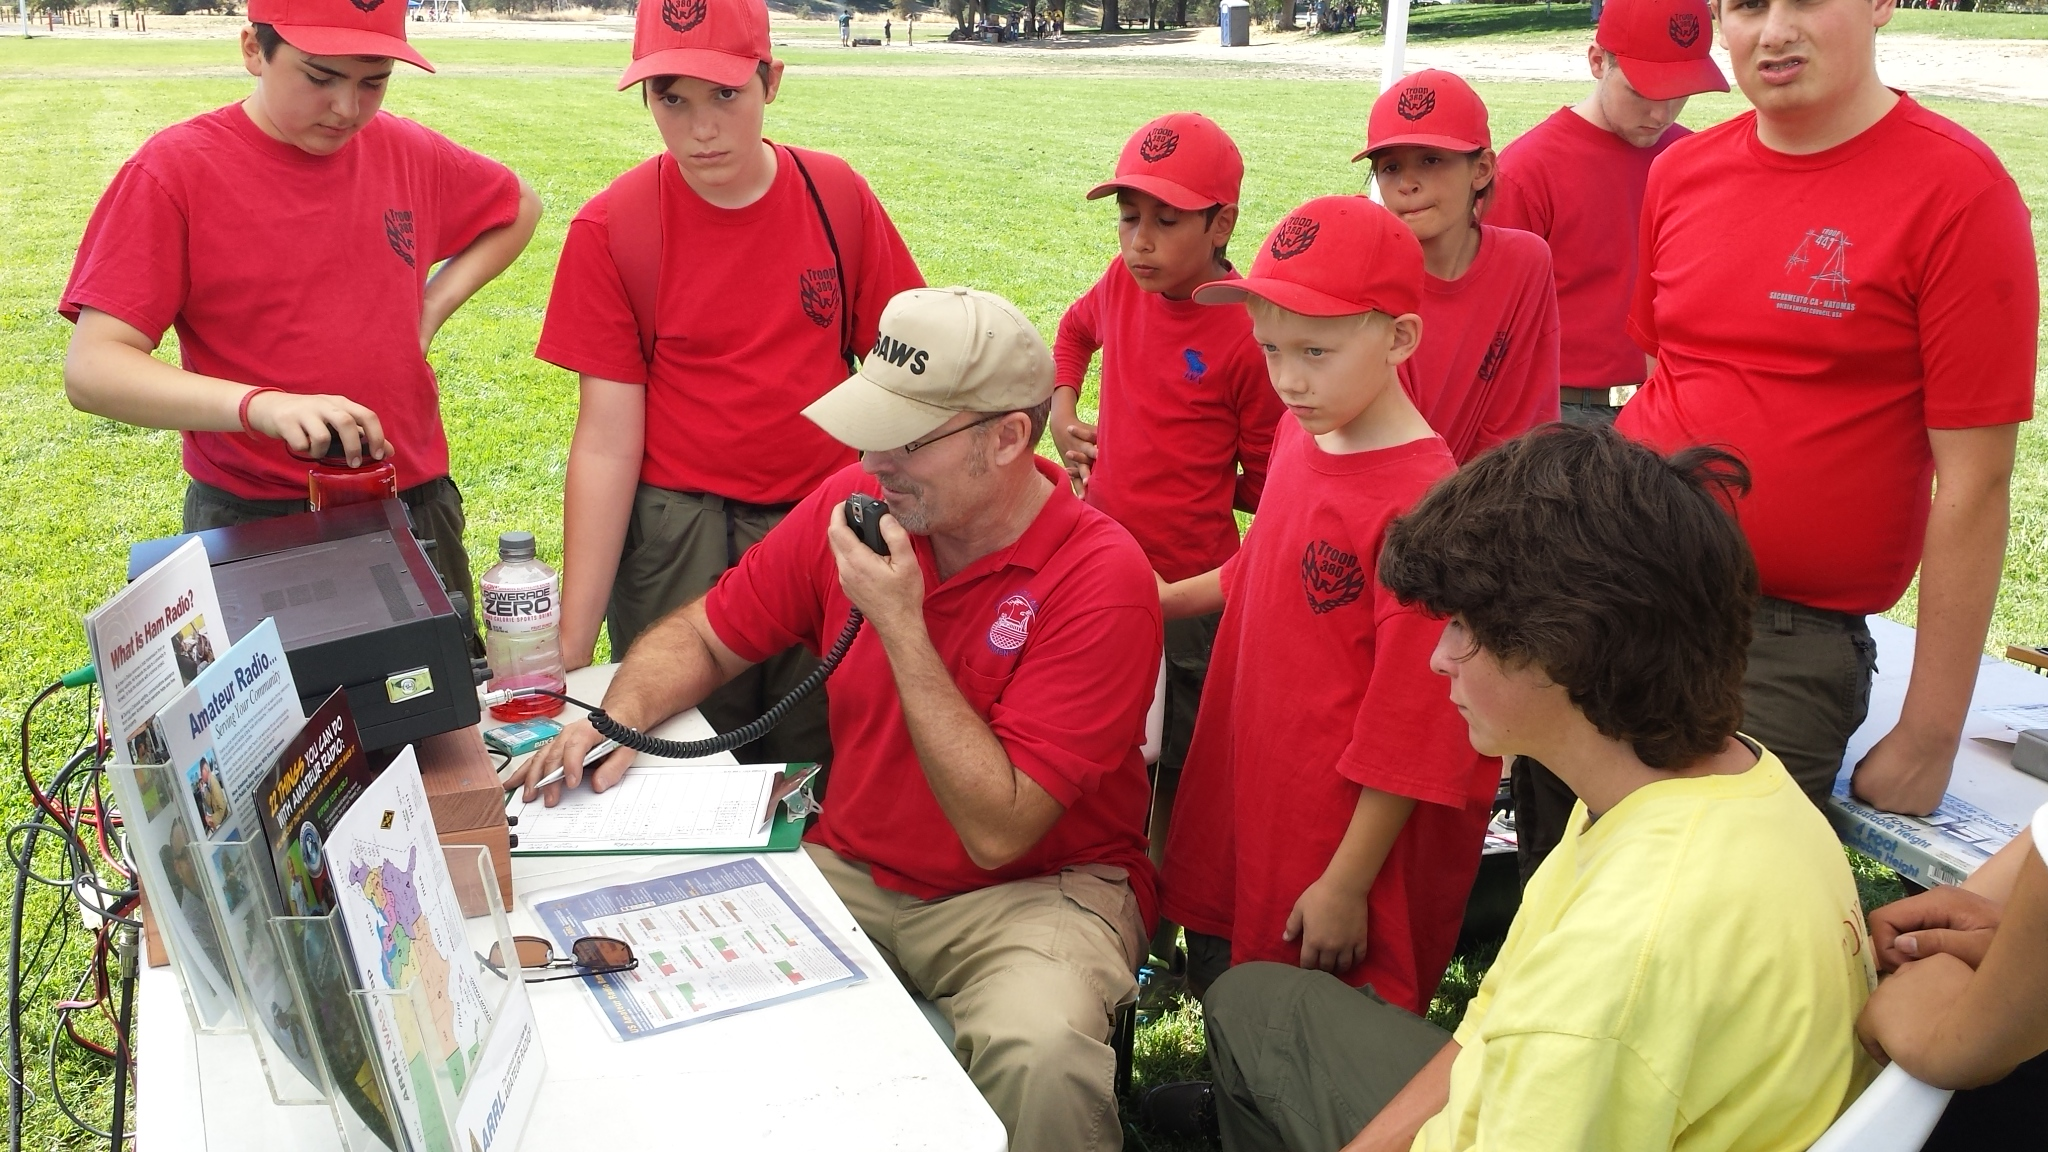 Andy Stephens W6AWS demonstrating Amateur Radio to scouts from Troop 380